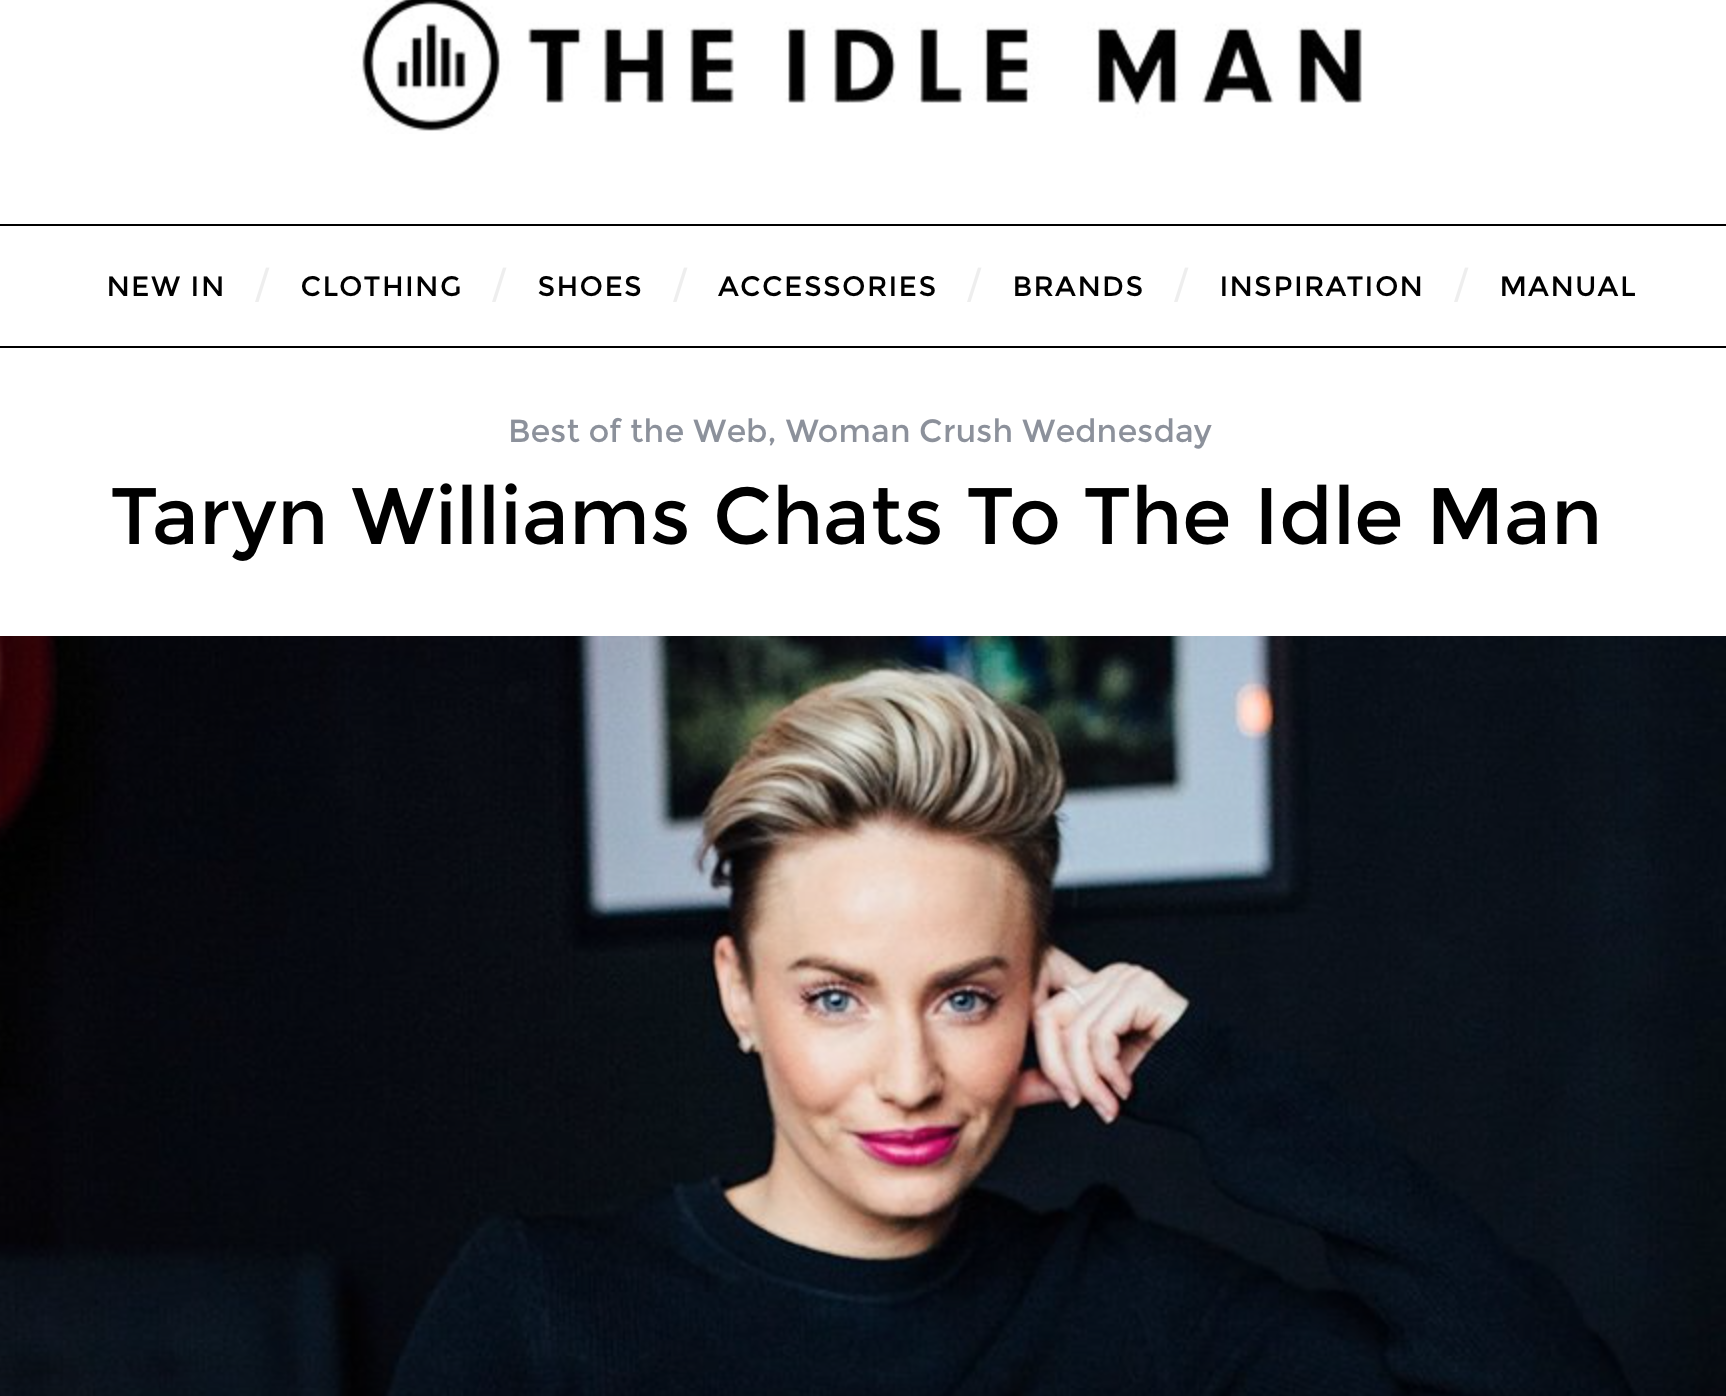 http://theidleman.com/manual/web-roundup/taryn-williams-chats-to-the-idle-man/